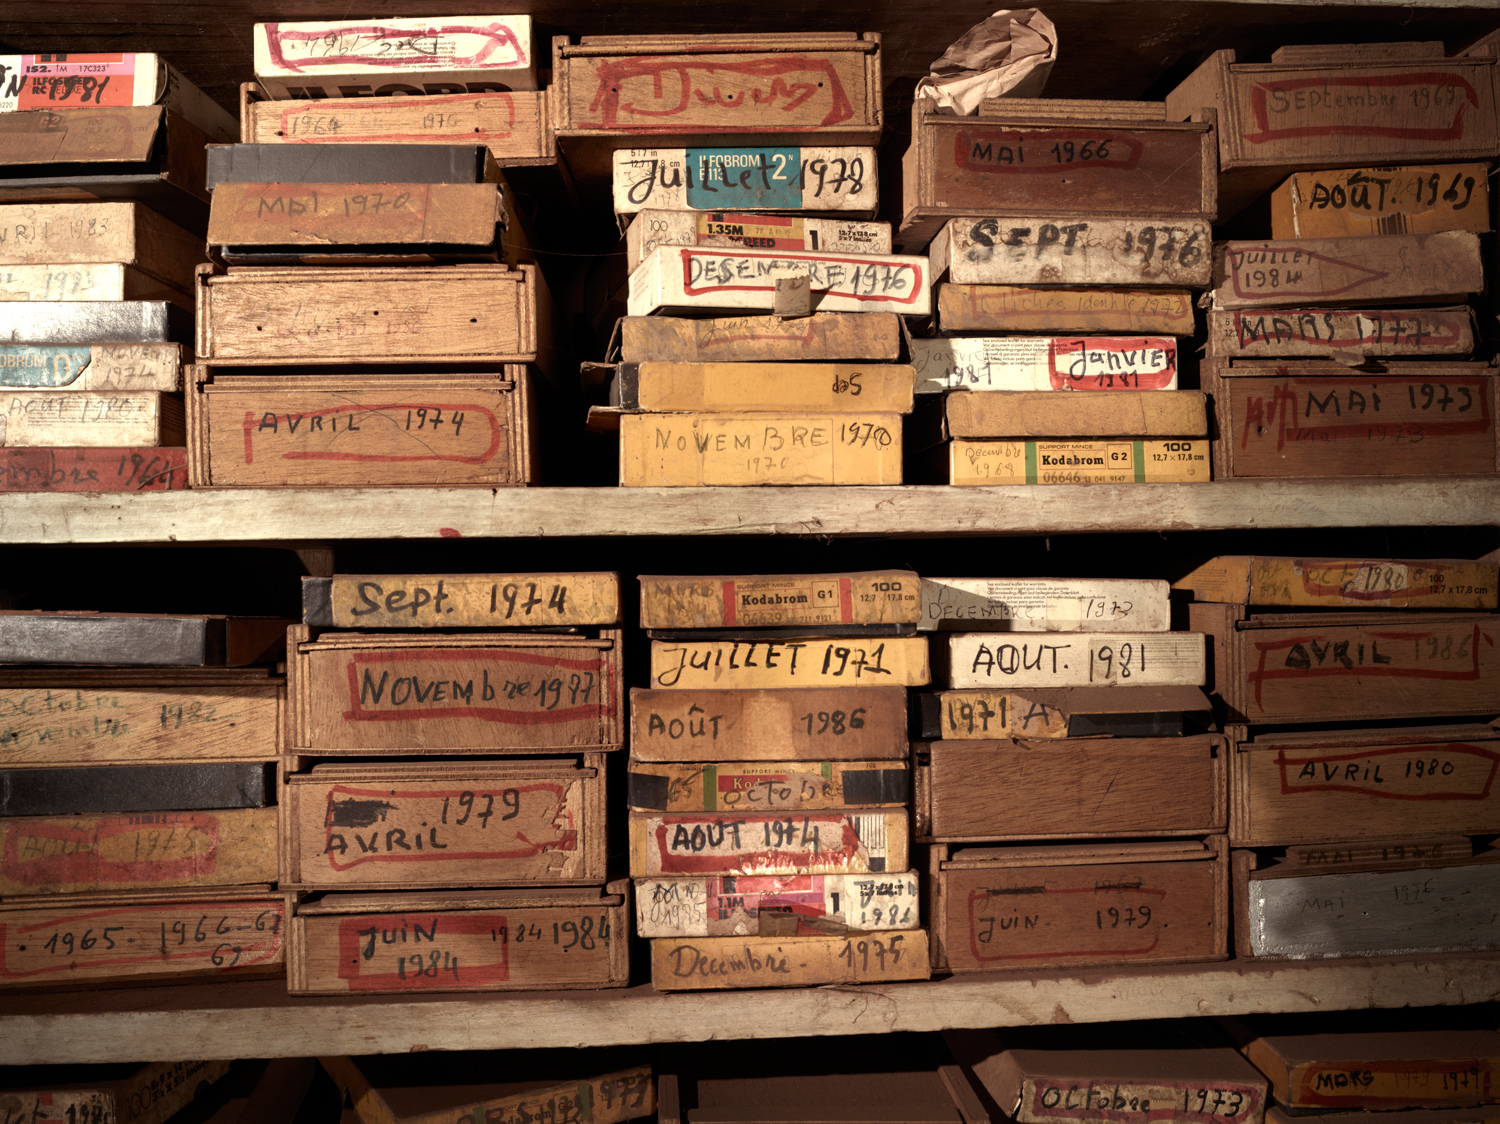 Inside Malick Sidibe's home, a huge archive of negatives sits piled up and unprotected. Sidibe and his sons are trying to find people to help them begin to digitally archive his work before much of it is ruined by moisture and dust.